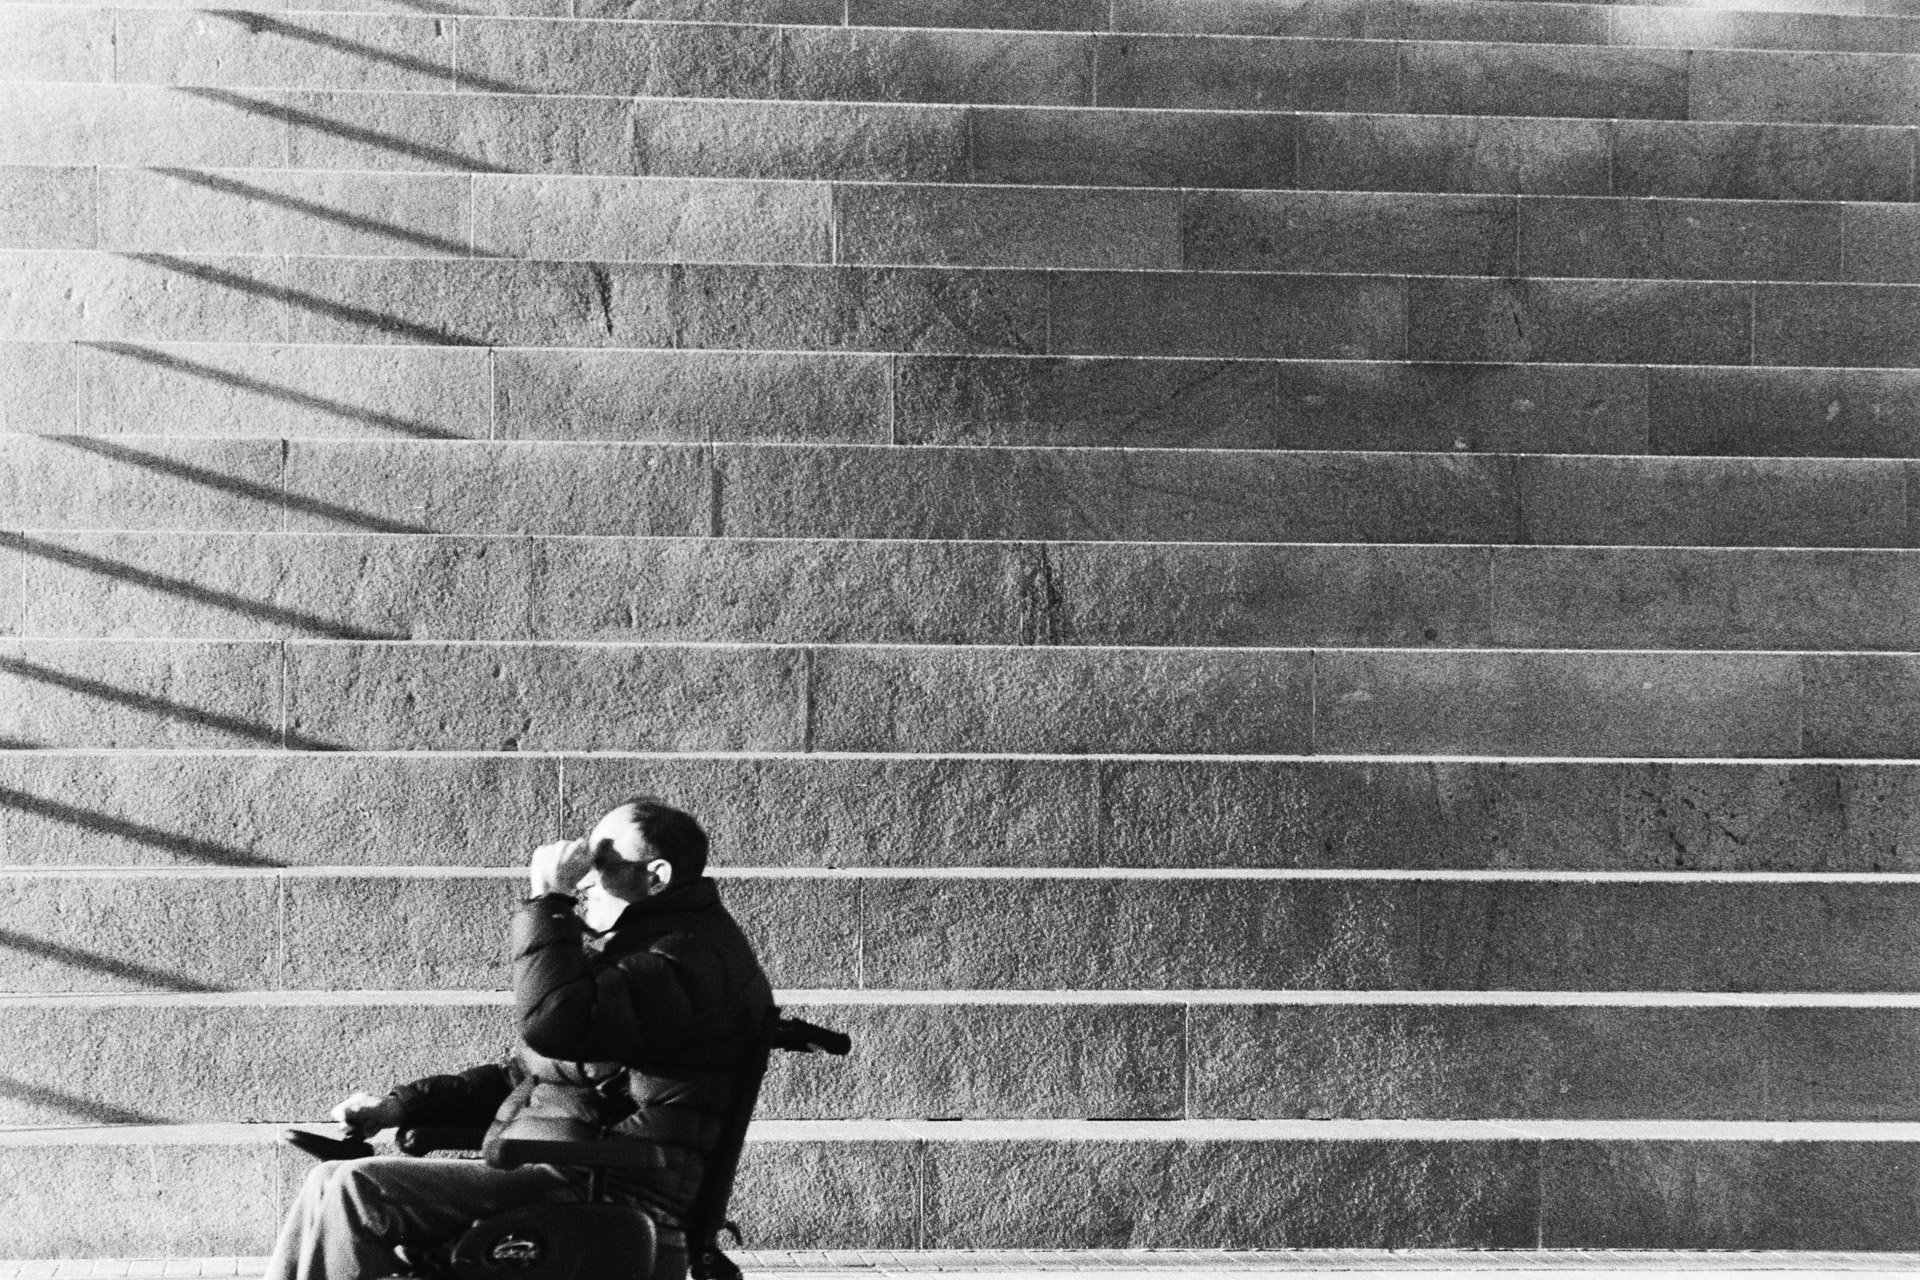 Liverpool 2013 (10) Liverpool ONE Staircase.jpg